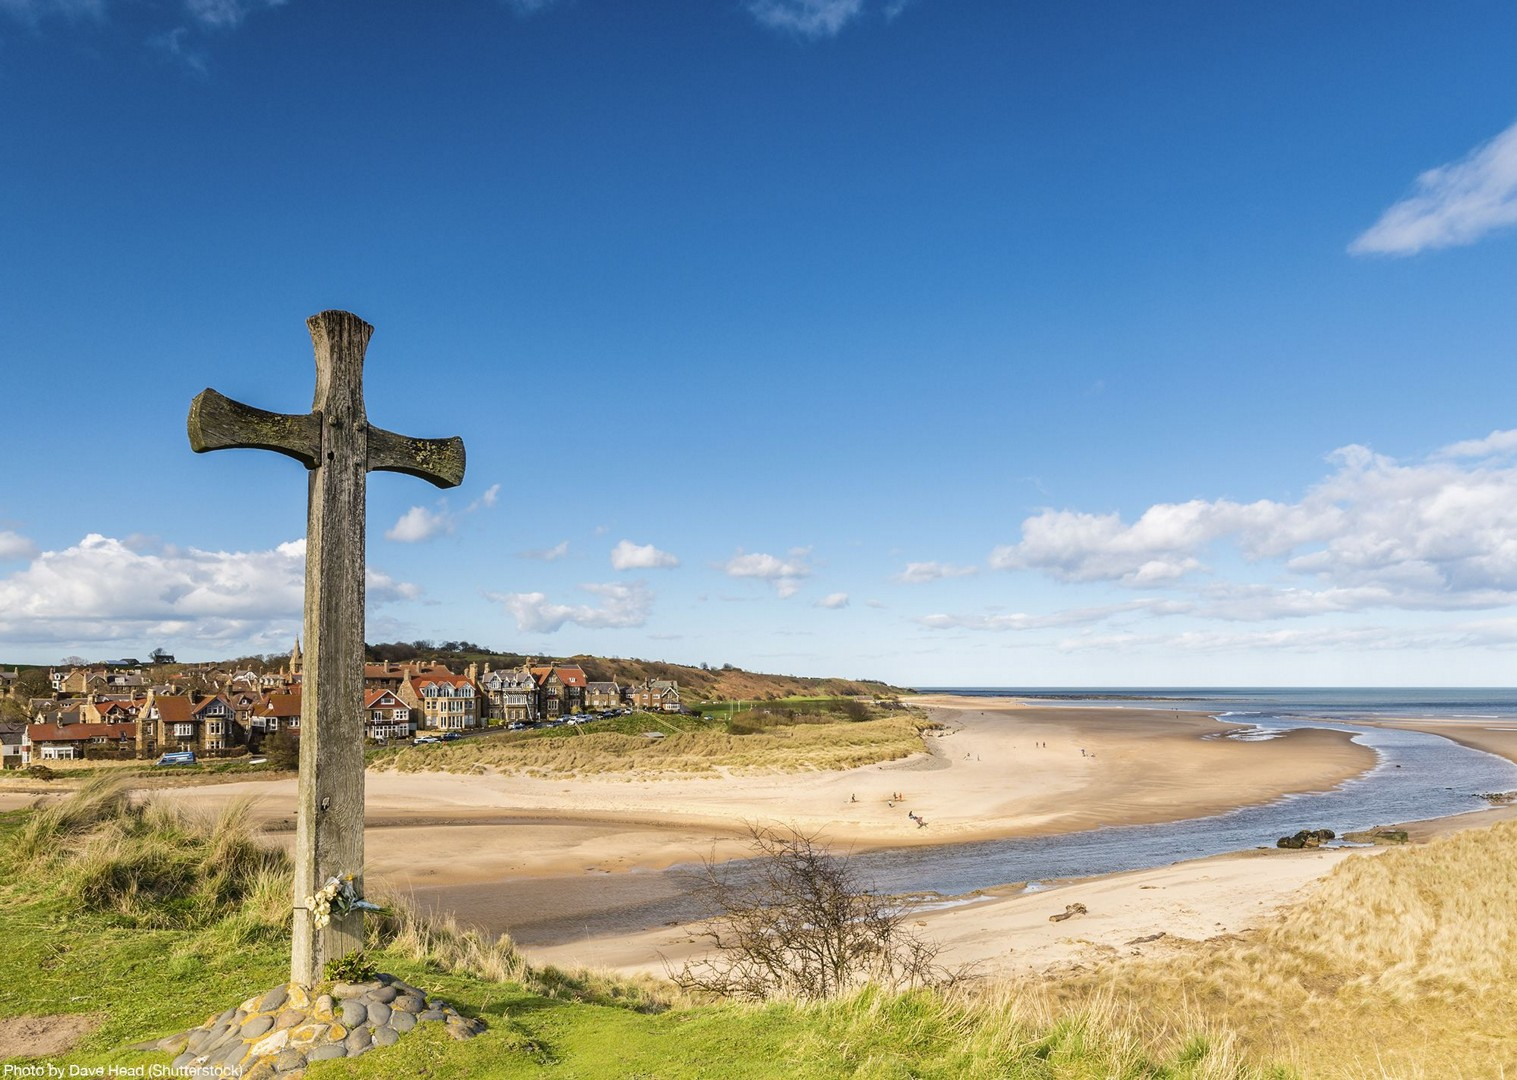 warkworth-beaches-cycling-holiday-bike-tour-self-guided-leisure-uk-england.jpg - UK - Northumberland - Alnmouth - Self-Guided Leisure Cycling Holiday - Leisure Cycling